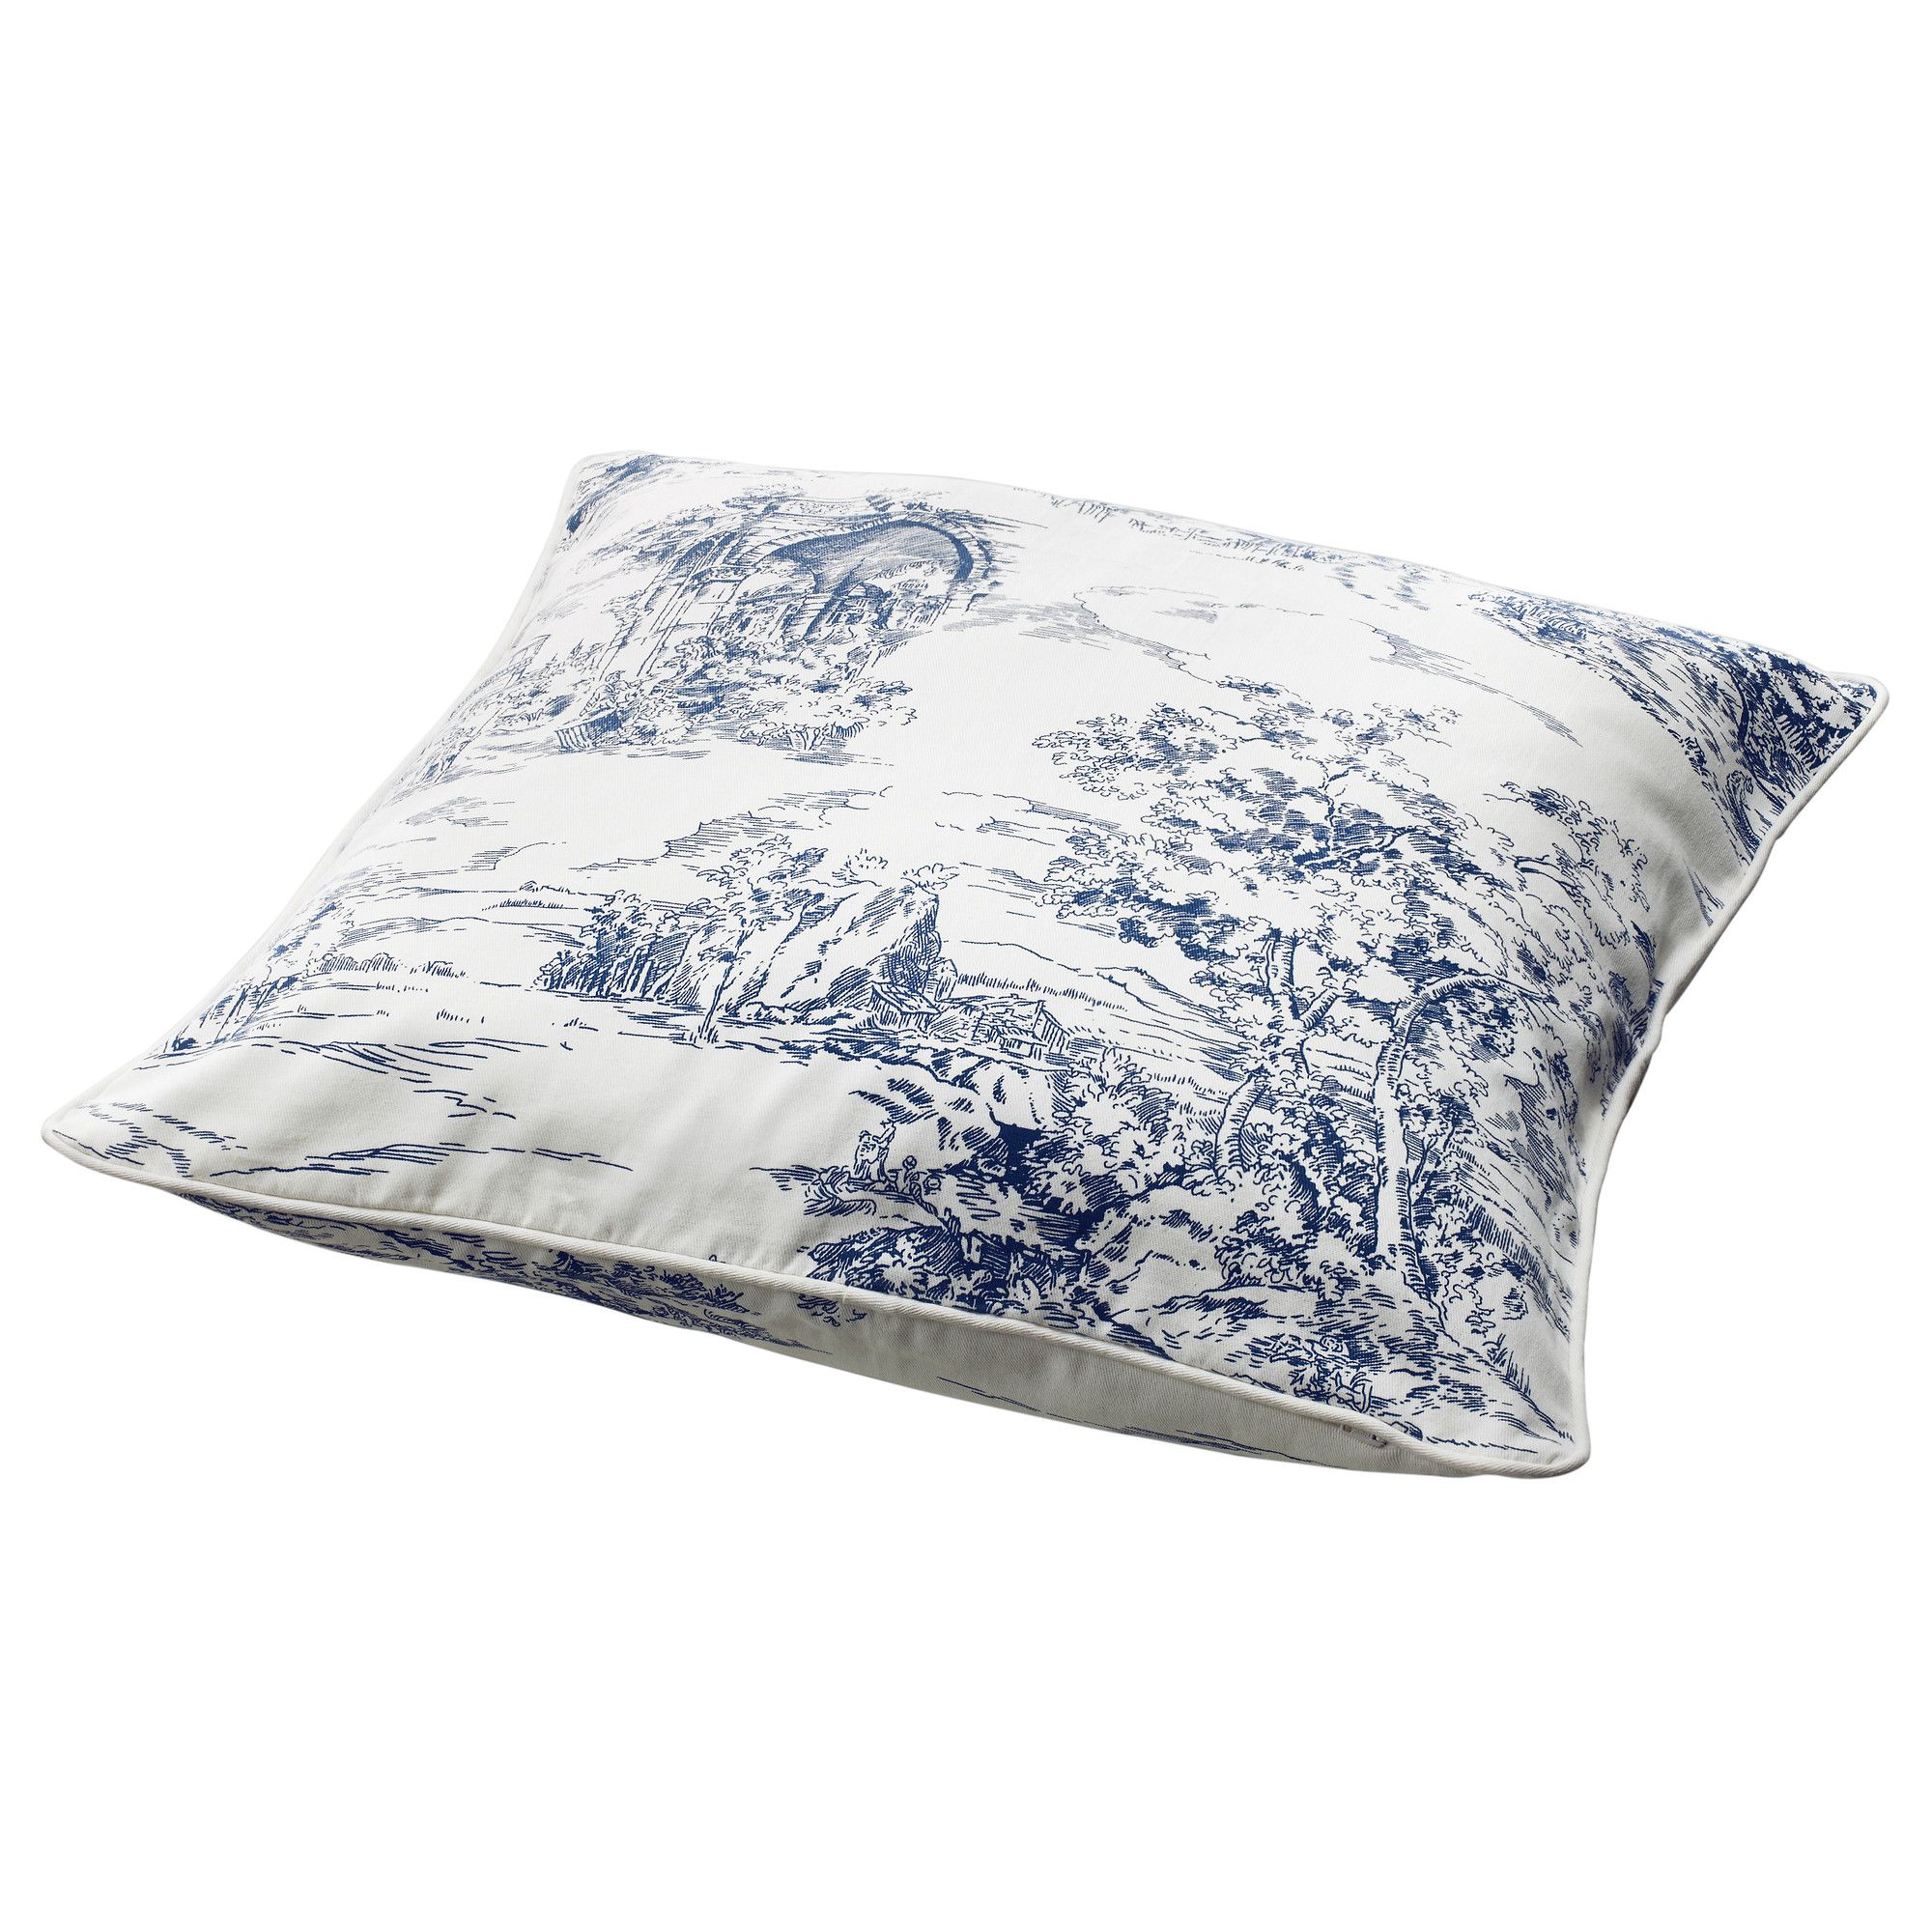 Ikea Federe Cuscini Divano emmie land cushion cover in french toile from ikea ($5